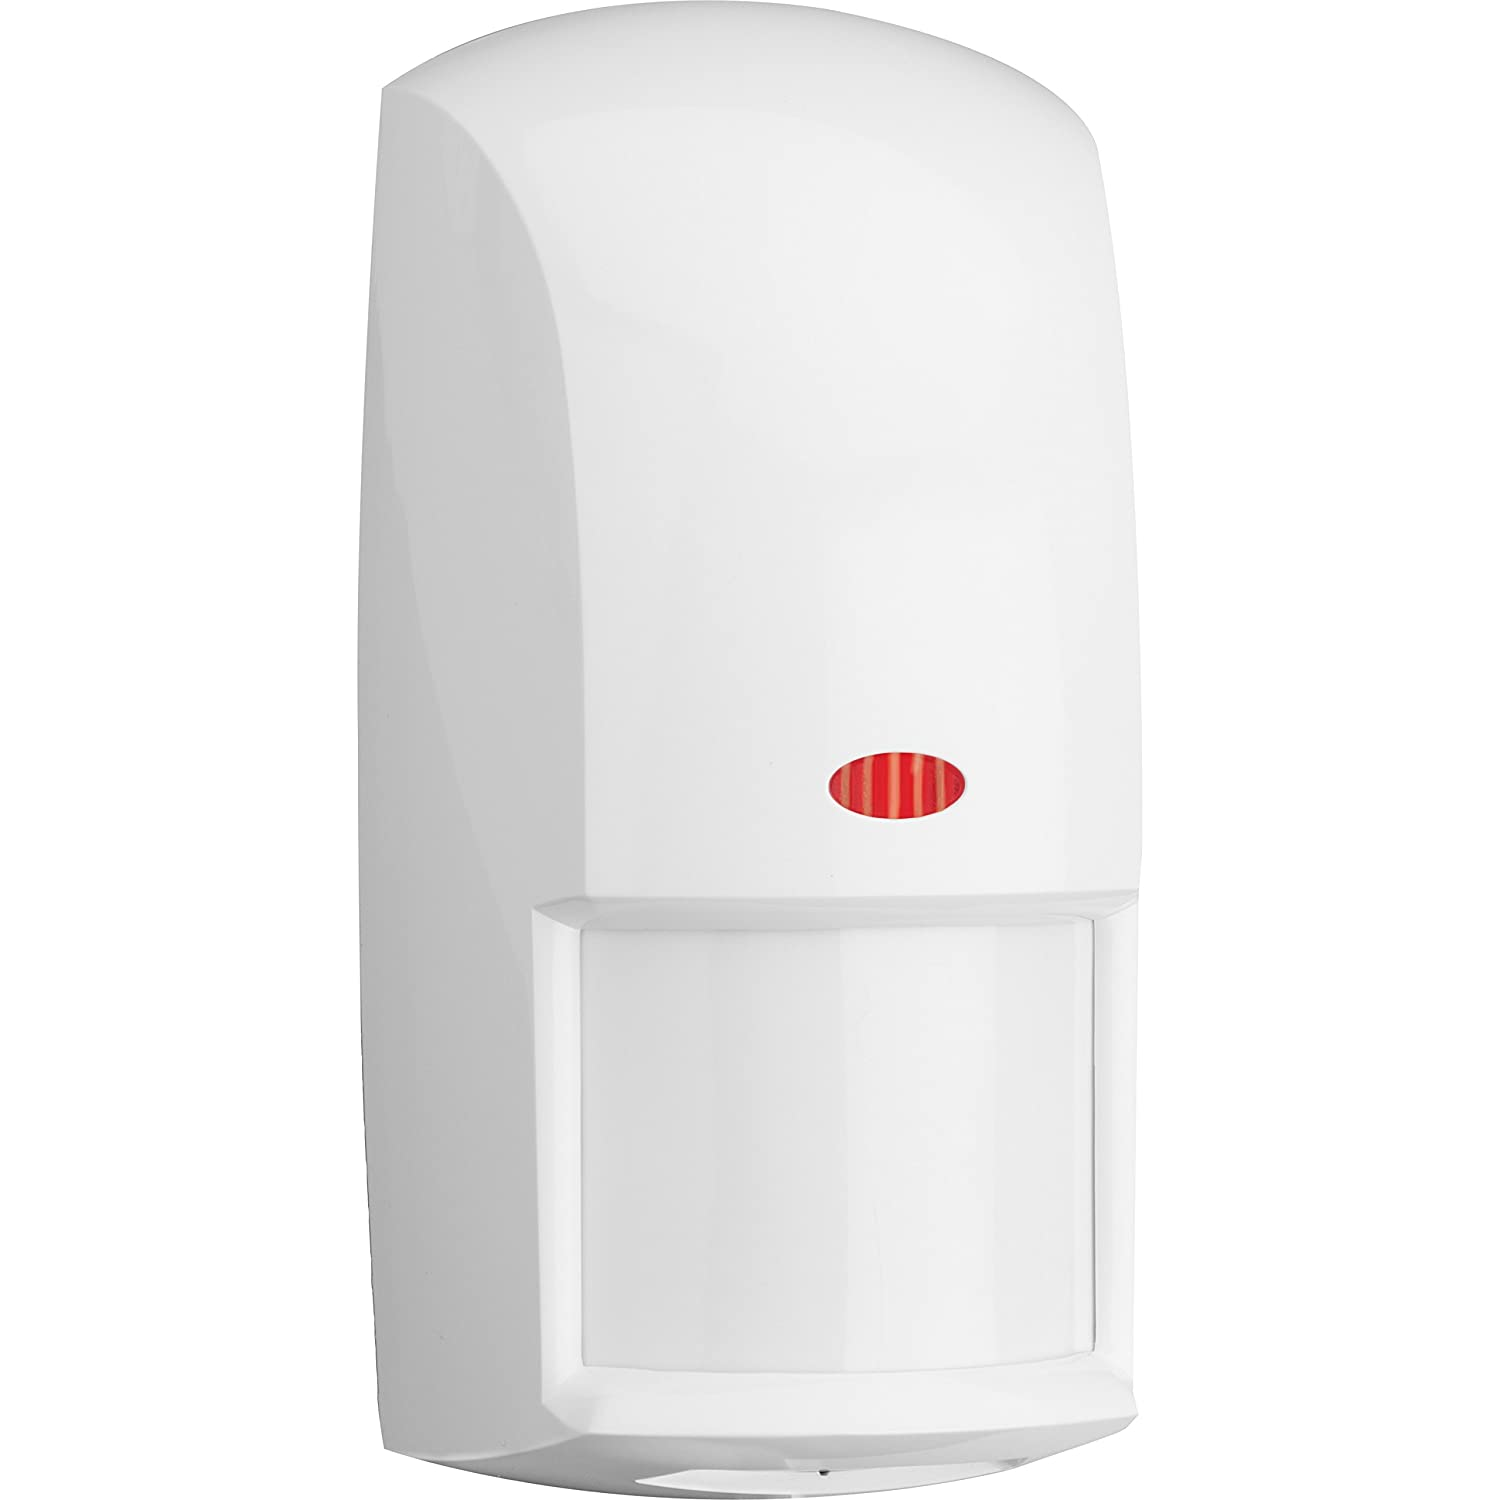 BOSCH SECURITY VIDEO OD850-F1 Outdoor TriTech Detector (10.525 Ghz) for Security Systems